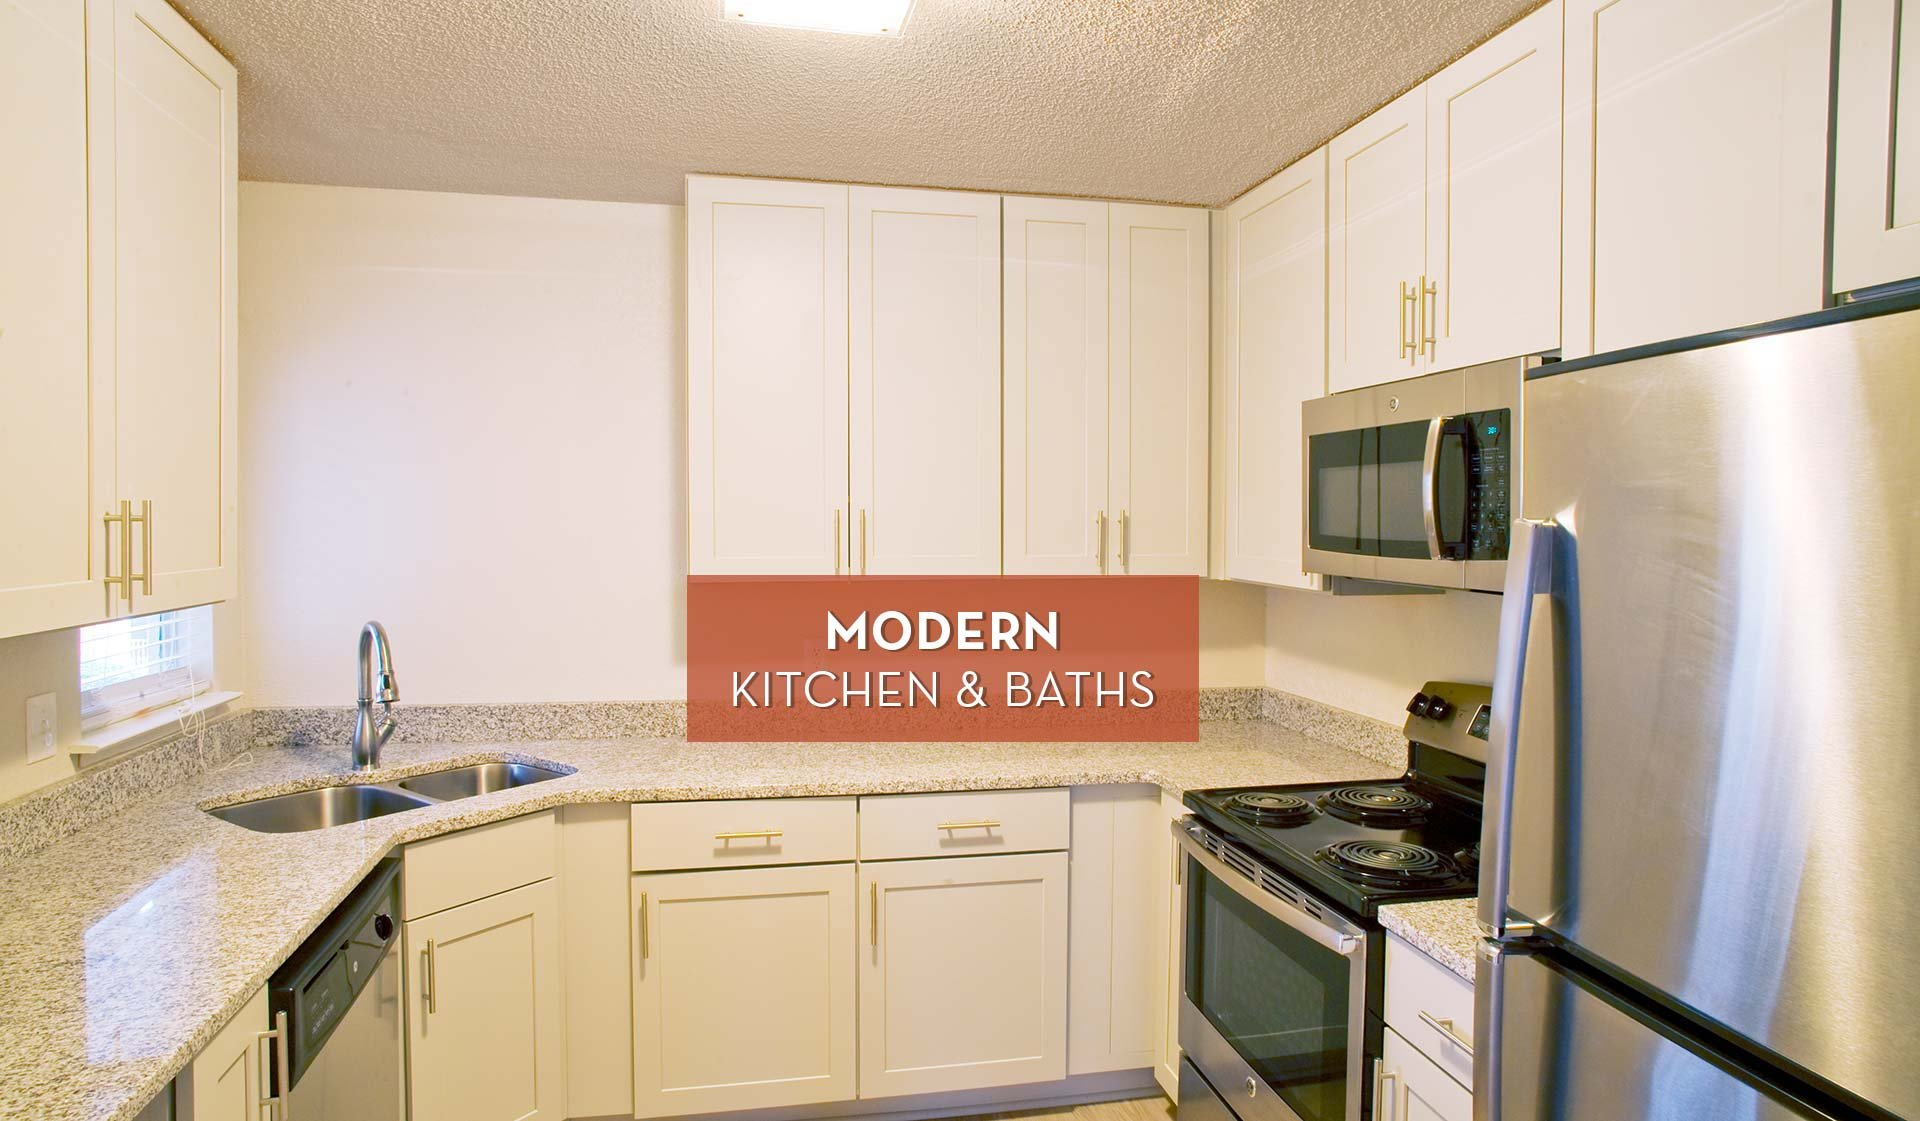 Hillmeade Apartments - Modern Kitchen